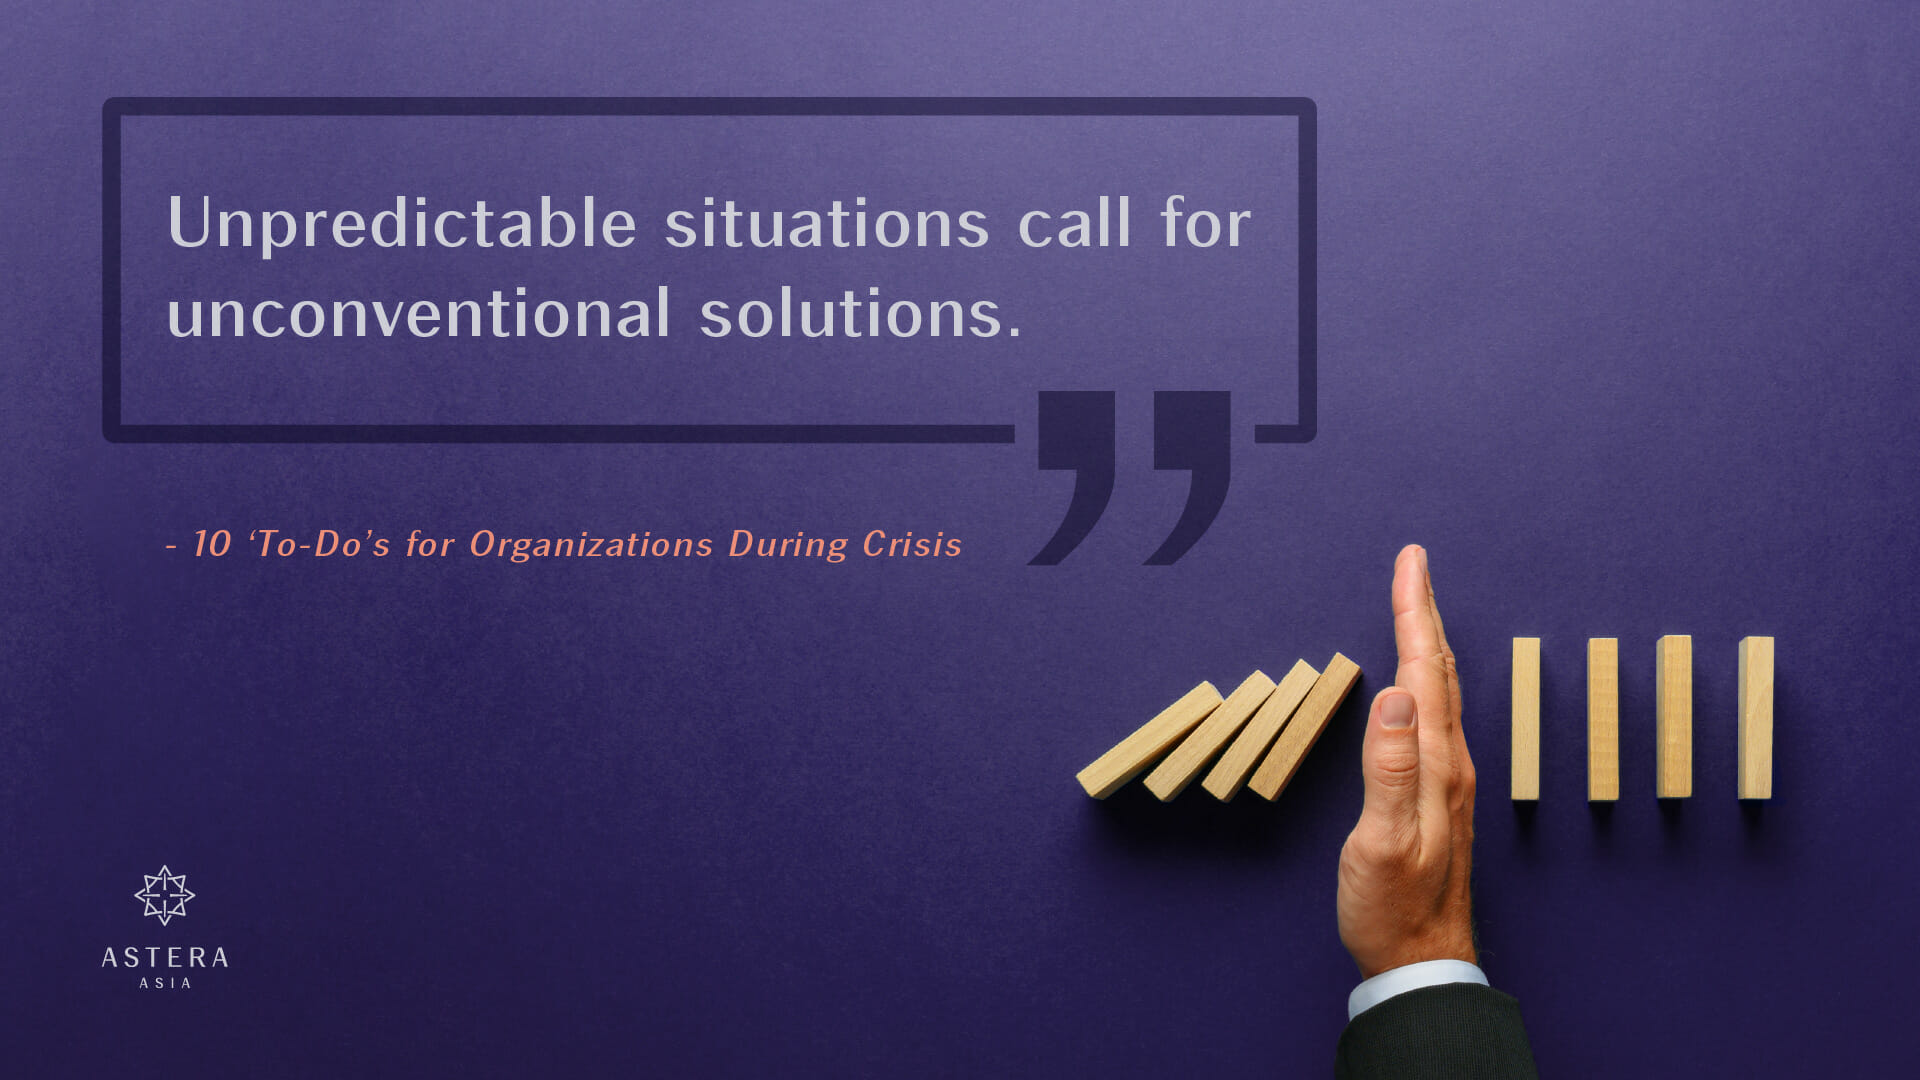 Unpredictable situations call for unconventional solutions.